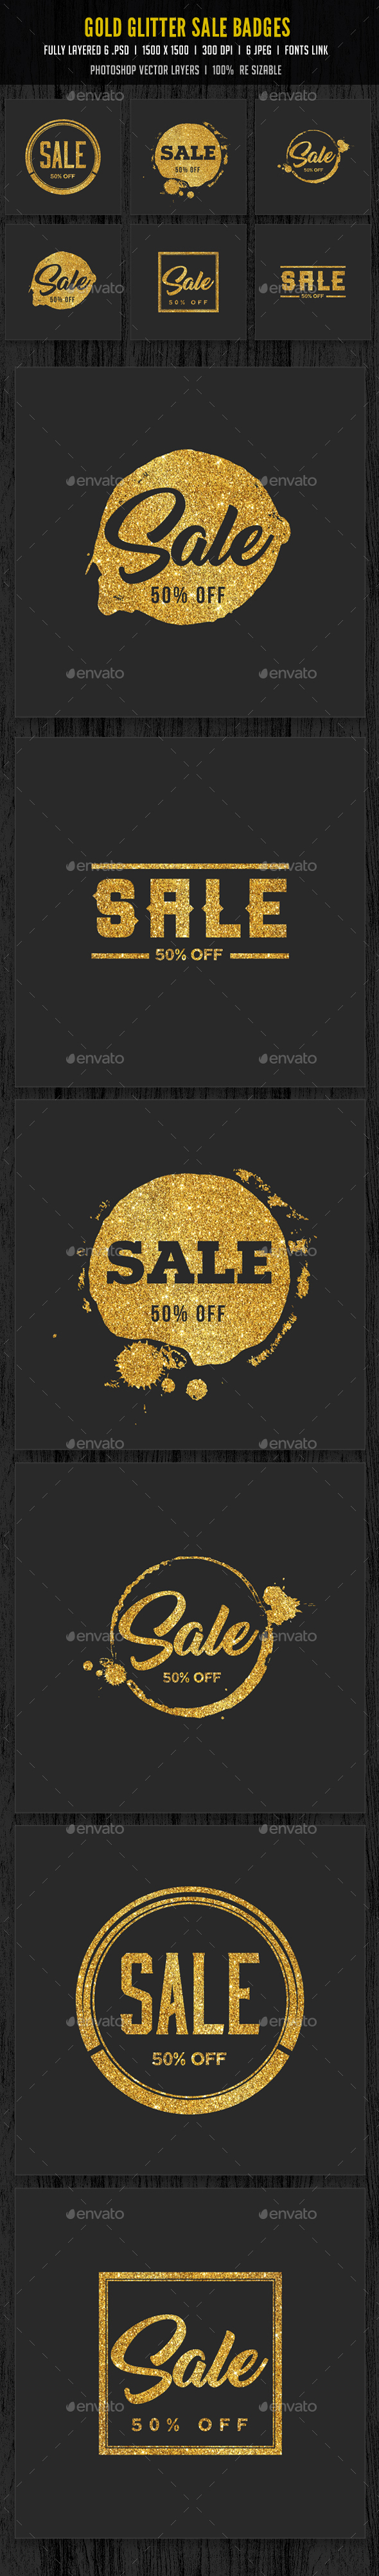 Gold Glitter Sale Badges - Badges & Stickers Web Elements